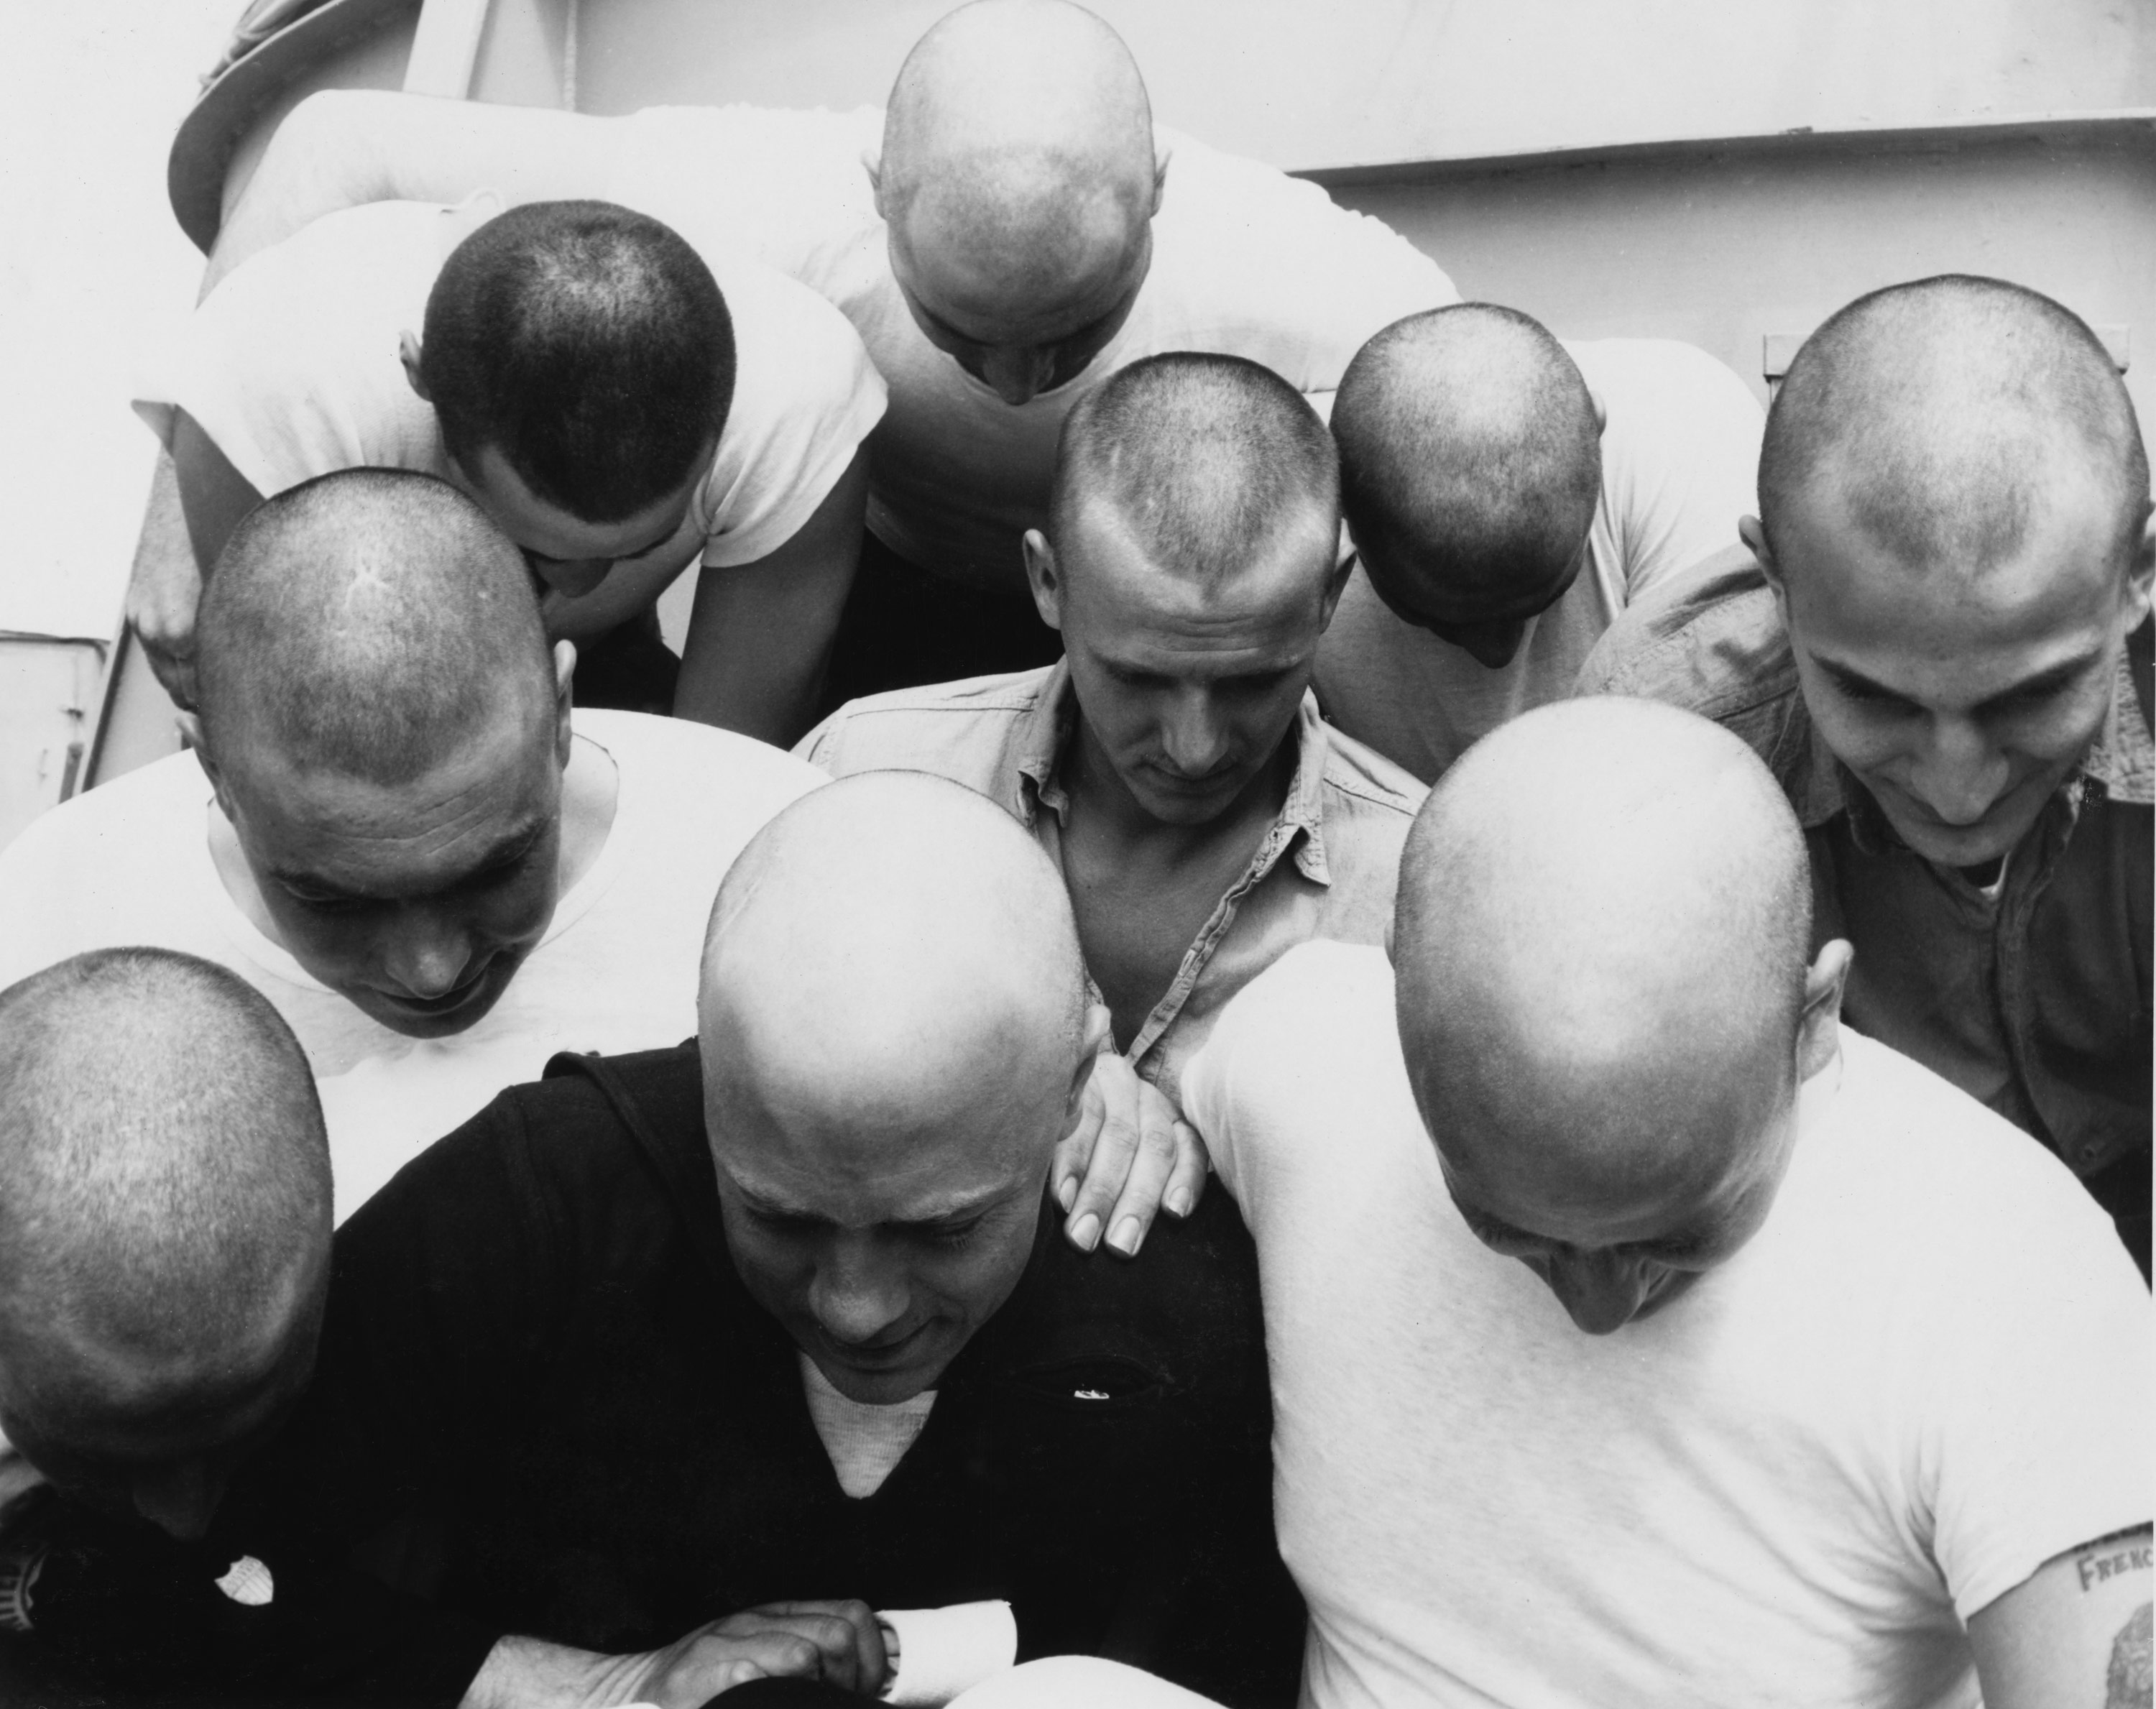 1945 - Members of USCG USS Duane Crew with Shaved Heads